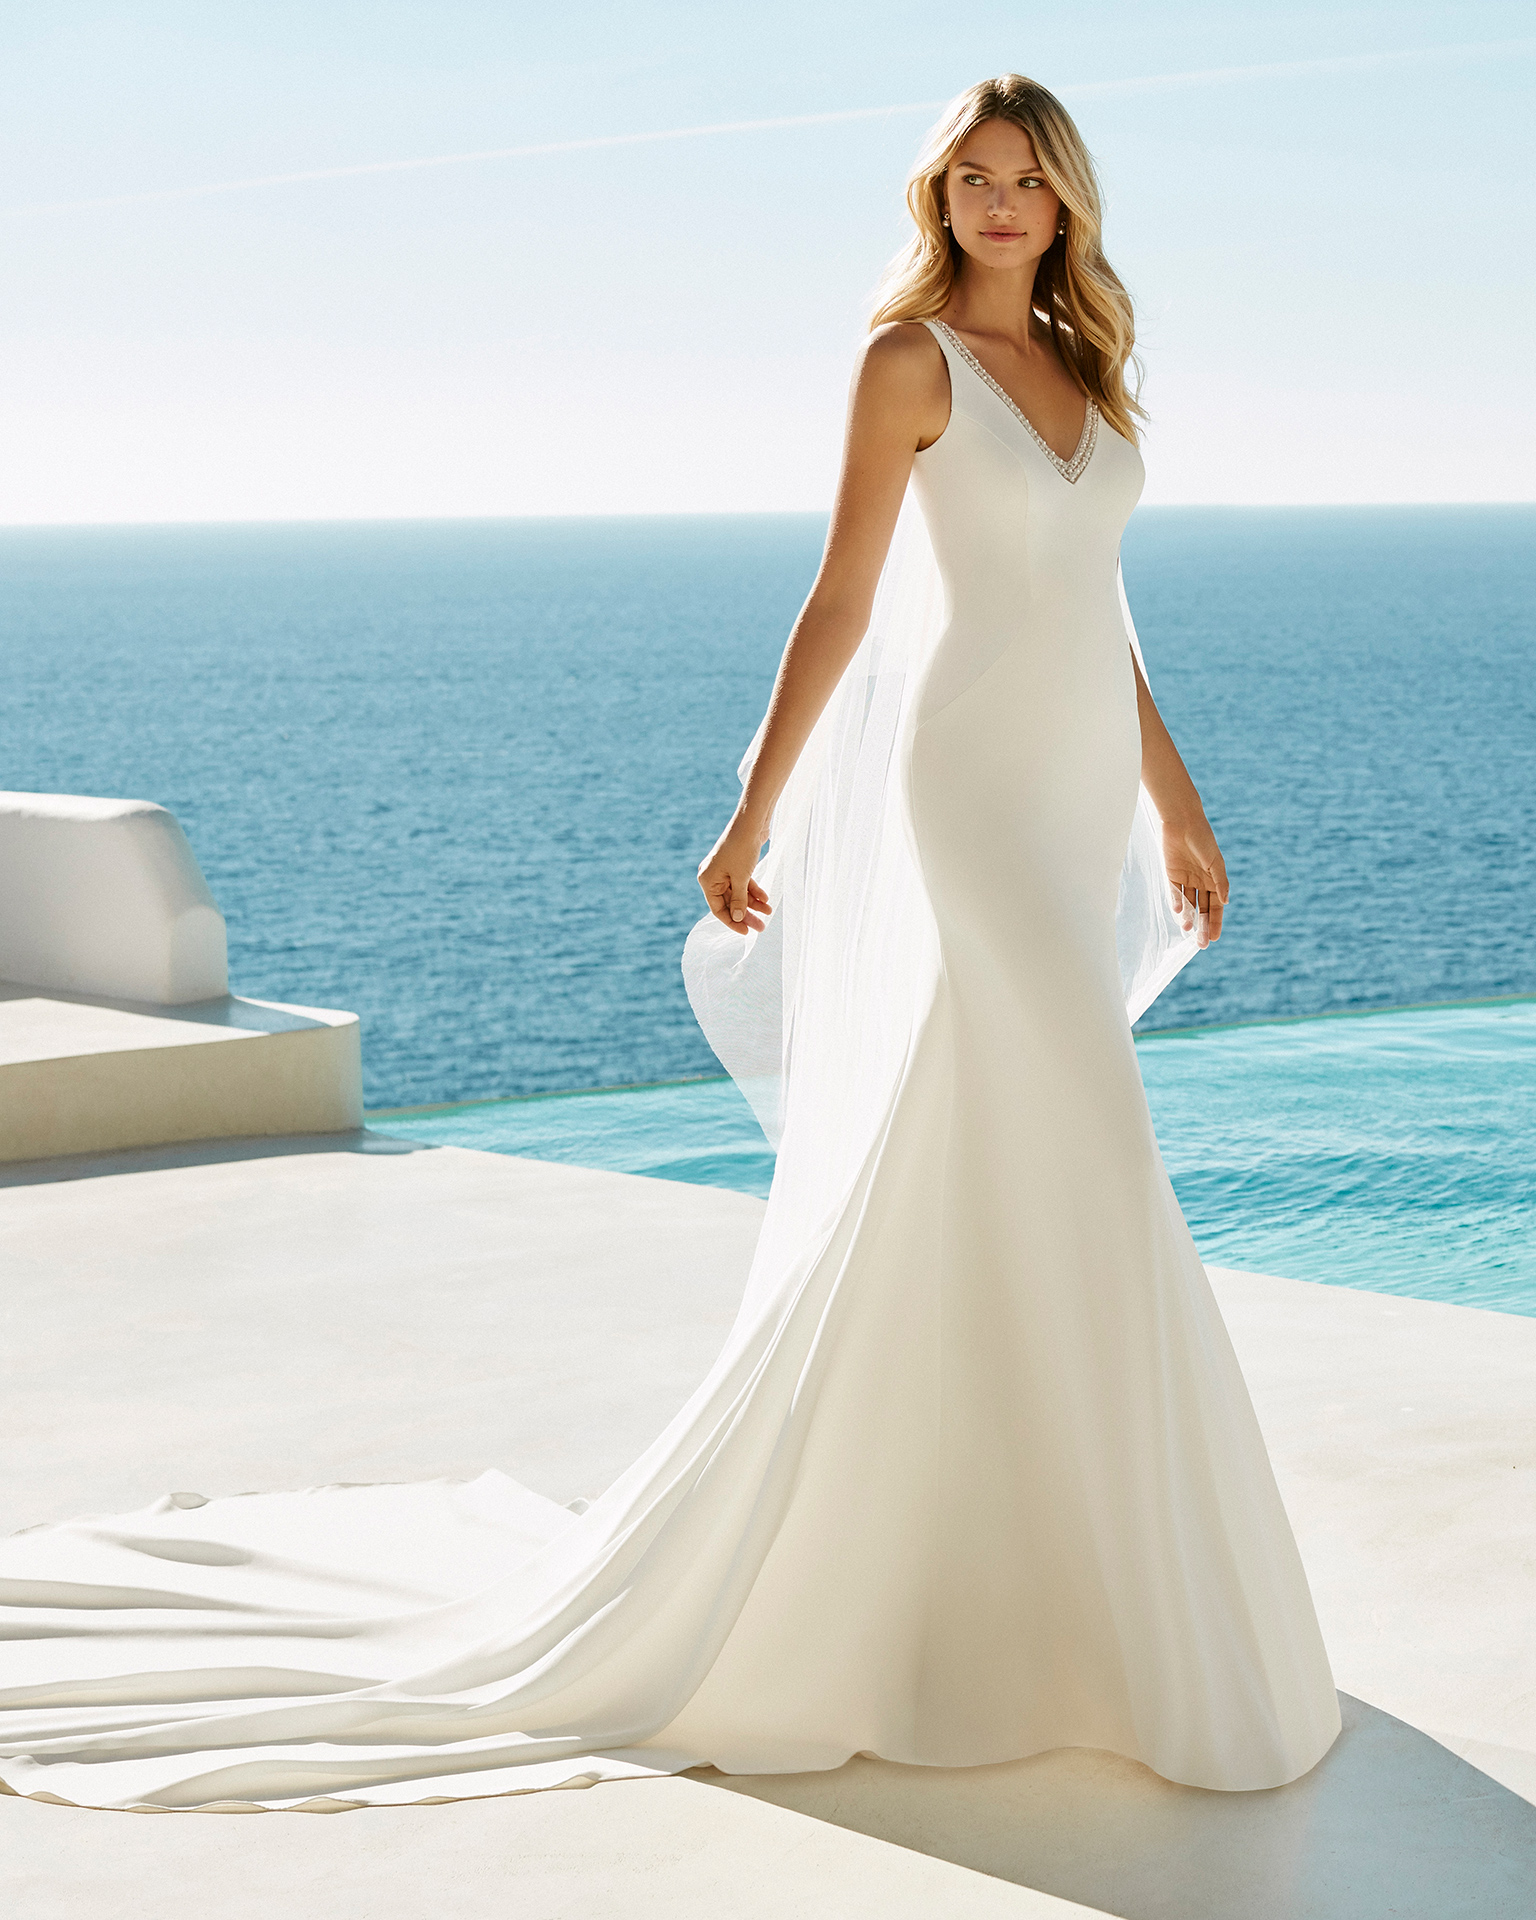 Sheath-style wedding dress in crepe and beaded lace. V-neckline and lace back. Available in natural. 2019 AIRE BEACH WEDDING Collection.